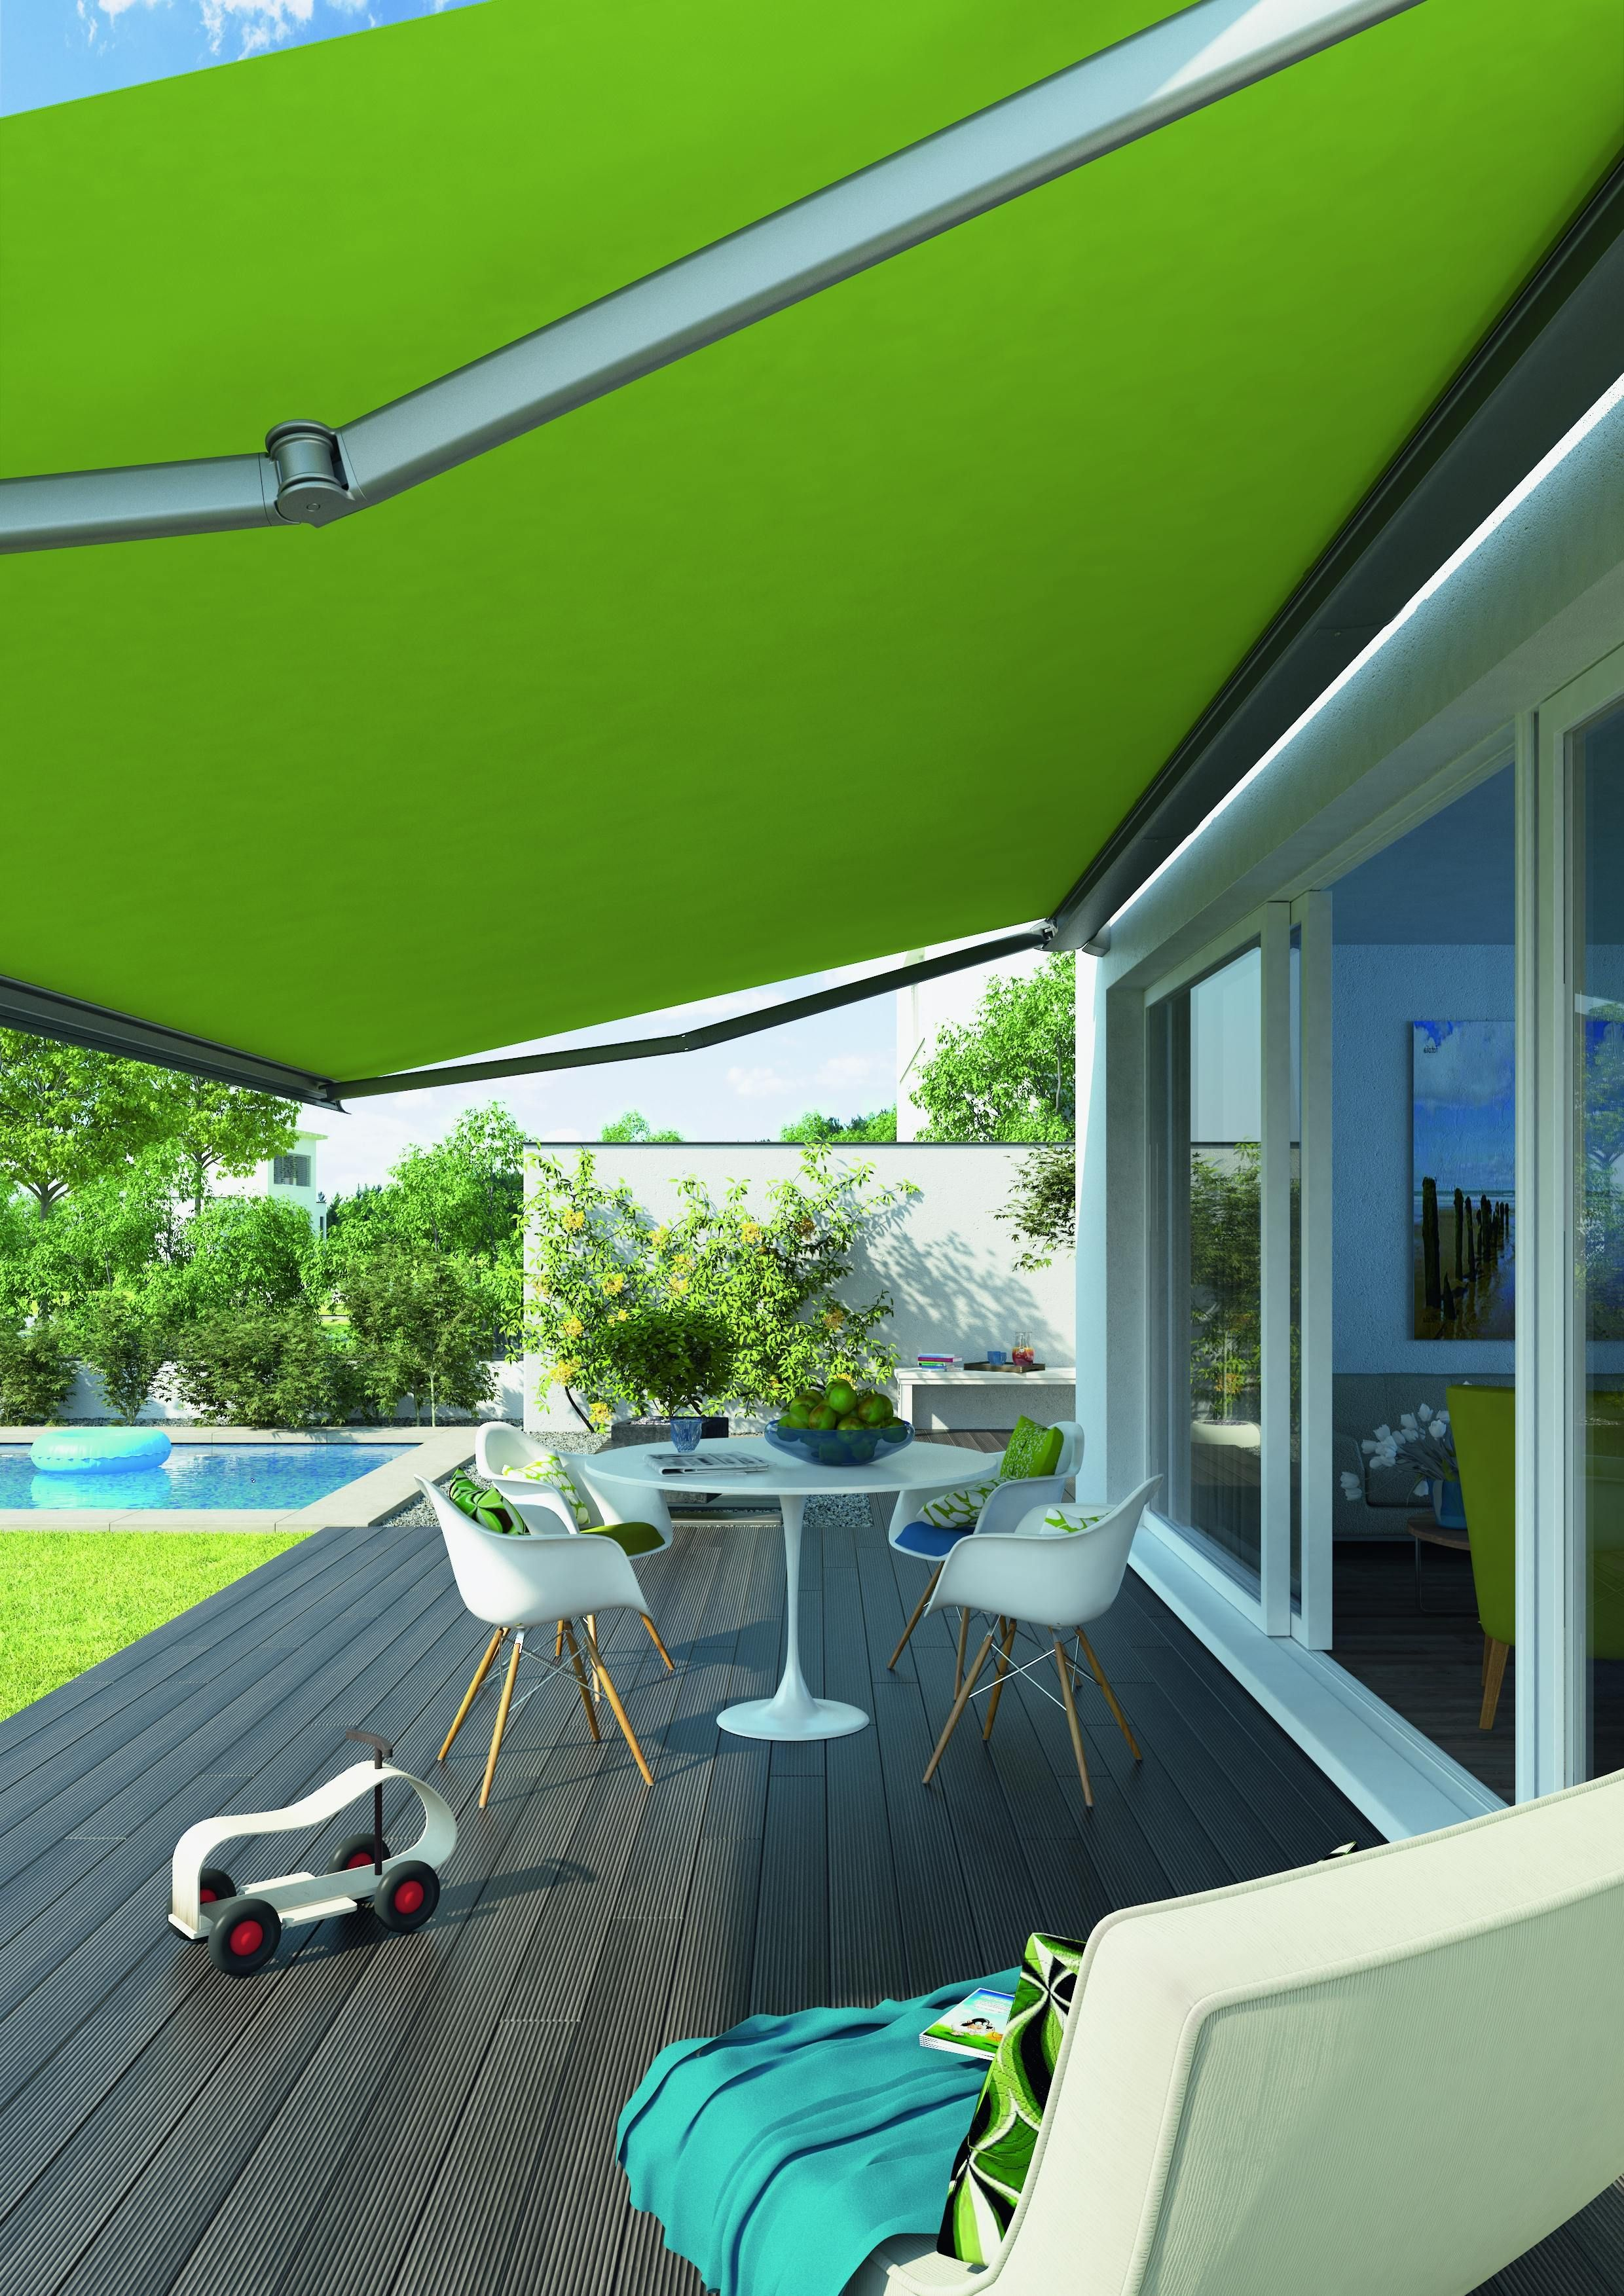 austin min for outdoor awning shade motor solutions retractable awnings living